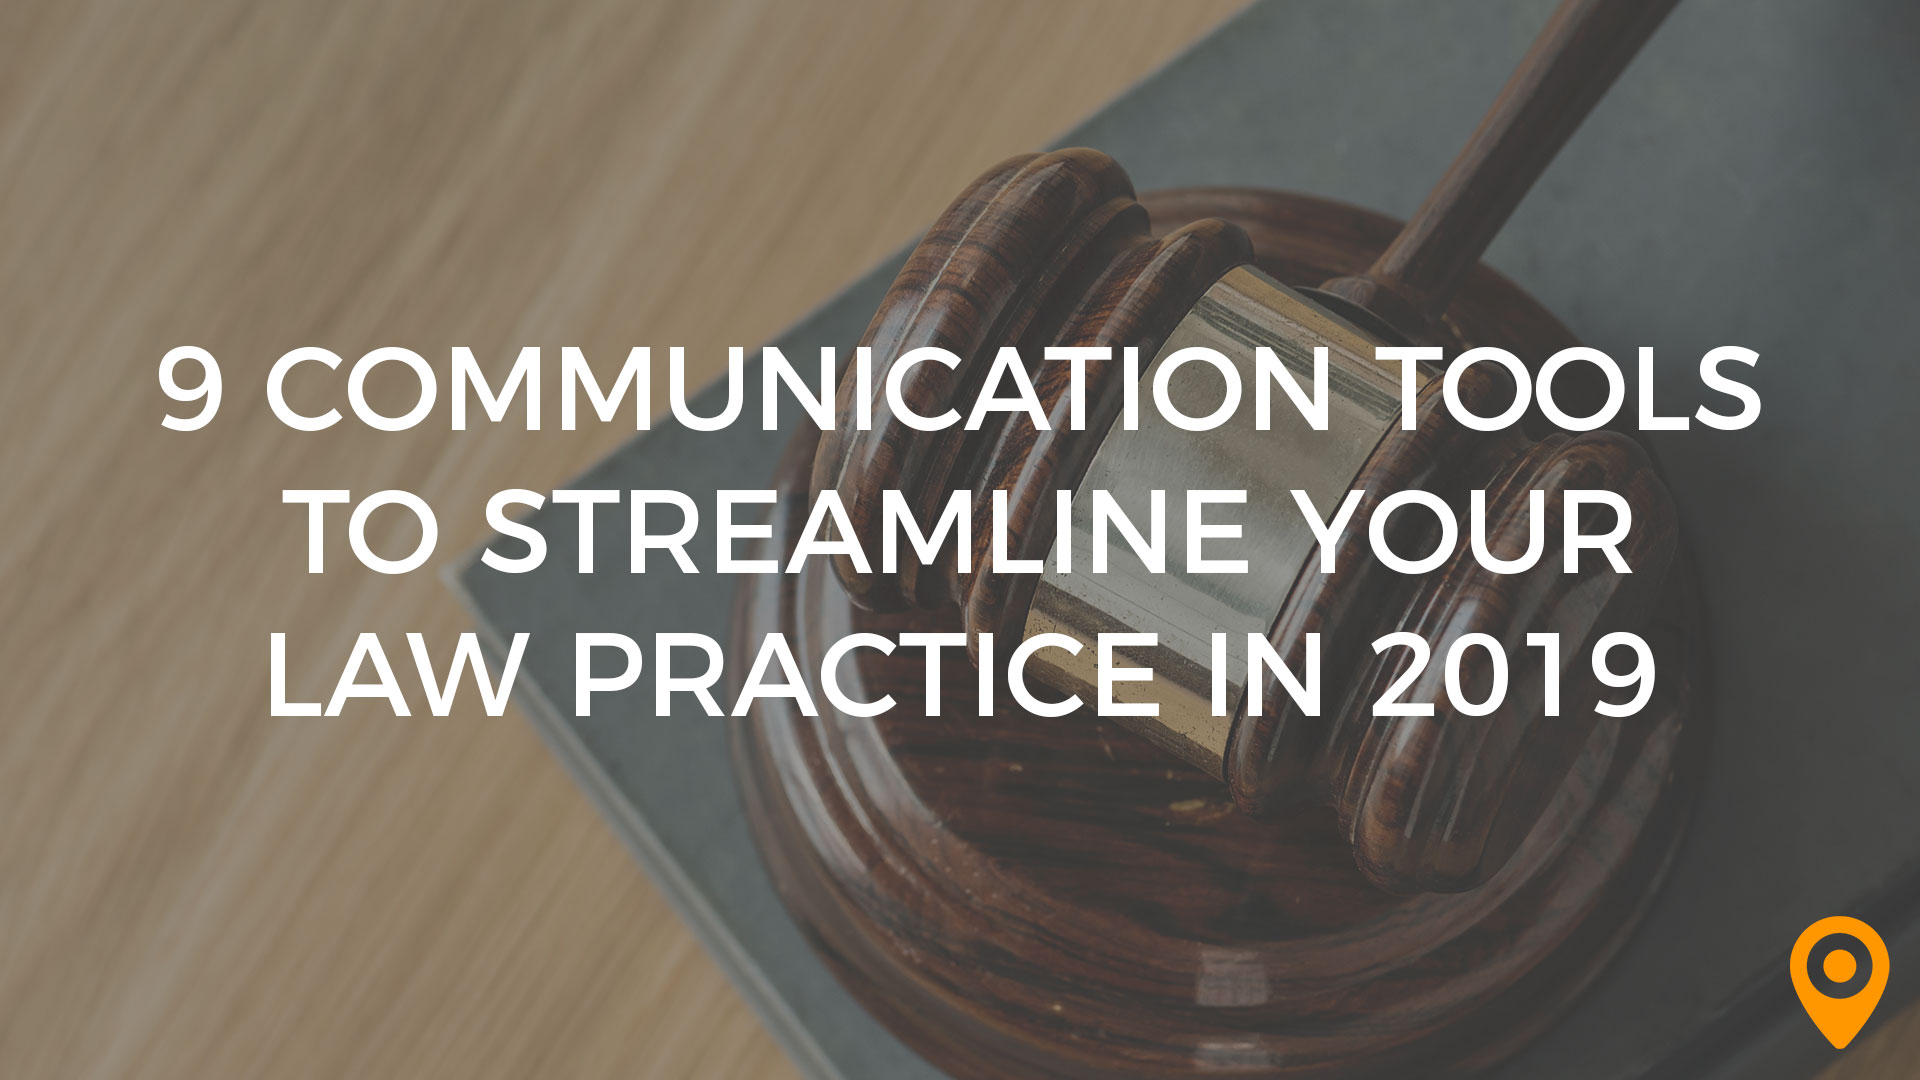 9 Communication Tools to Streamline Your Law Practice